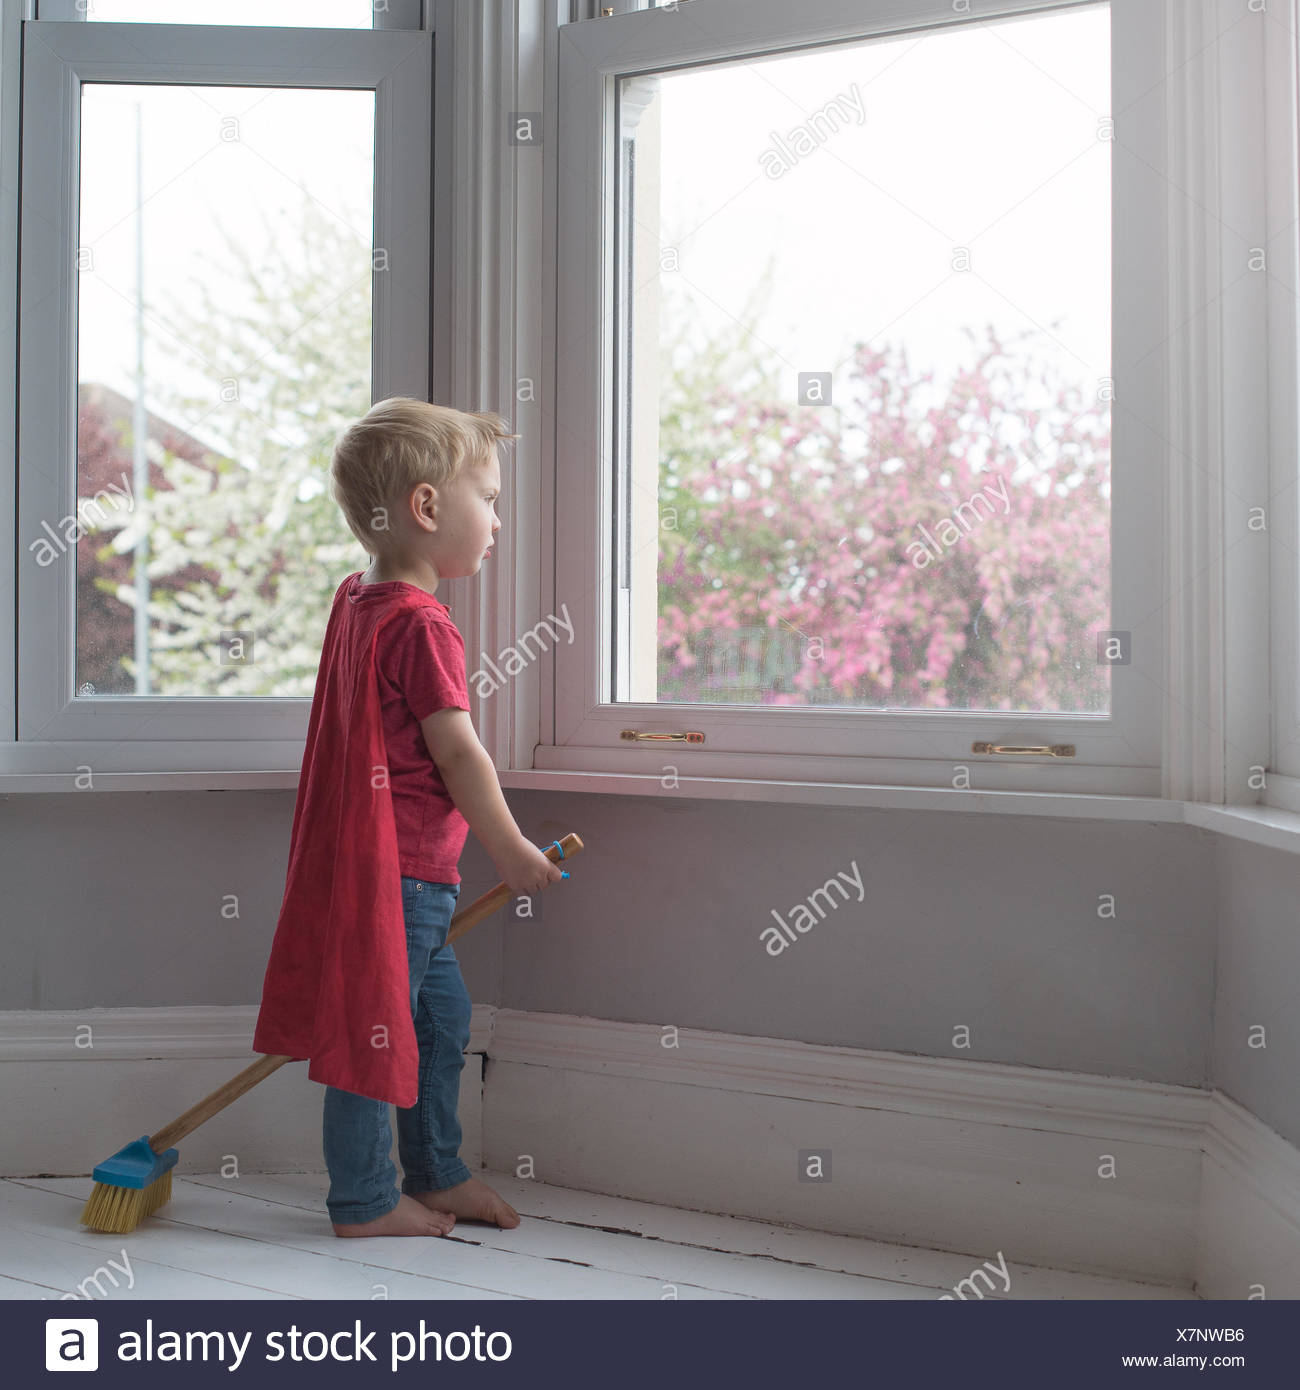 Boy dressed like superhero, looking through window - Stock Image